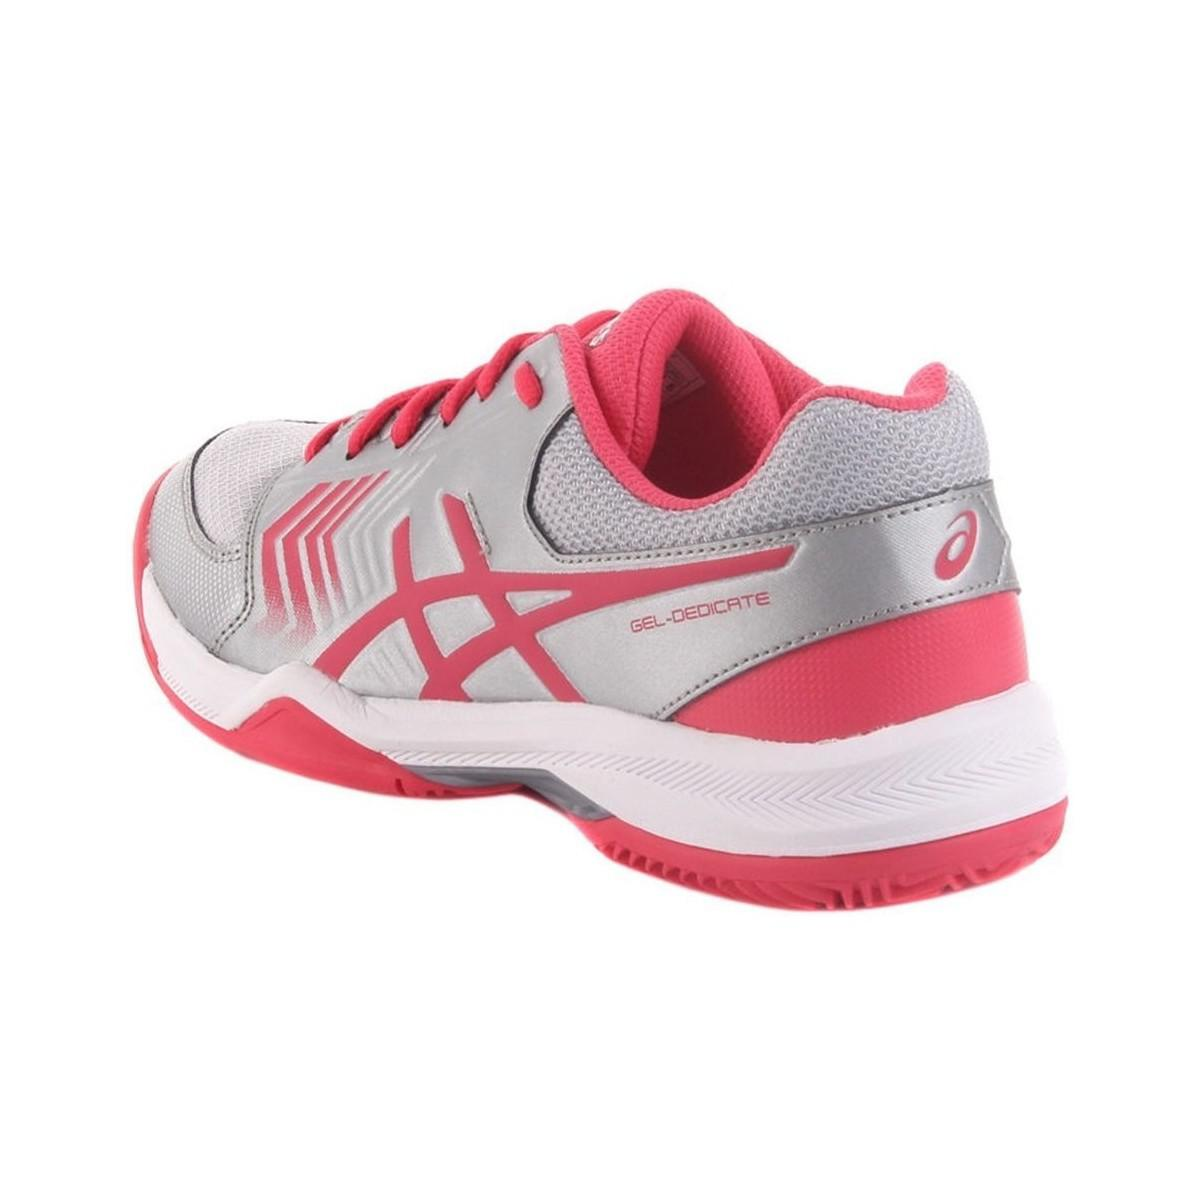 Professional For Sale Outlet Visit Asics Geldedicate 5 Womens 9319 women's Tennis Trainers (Shoes) in Cheap Sale In China Cheap Find Great CfafaMvwyD